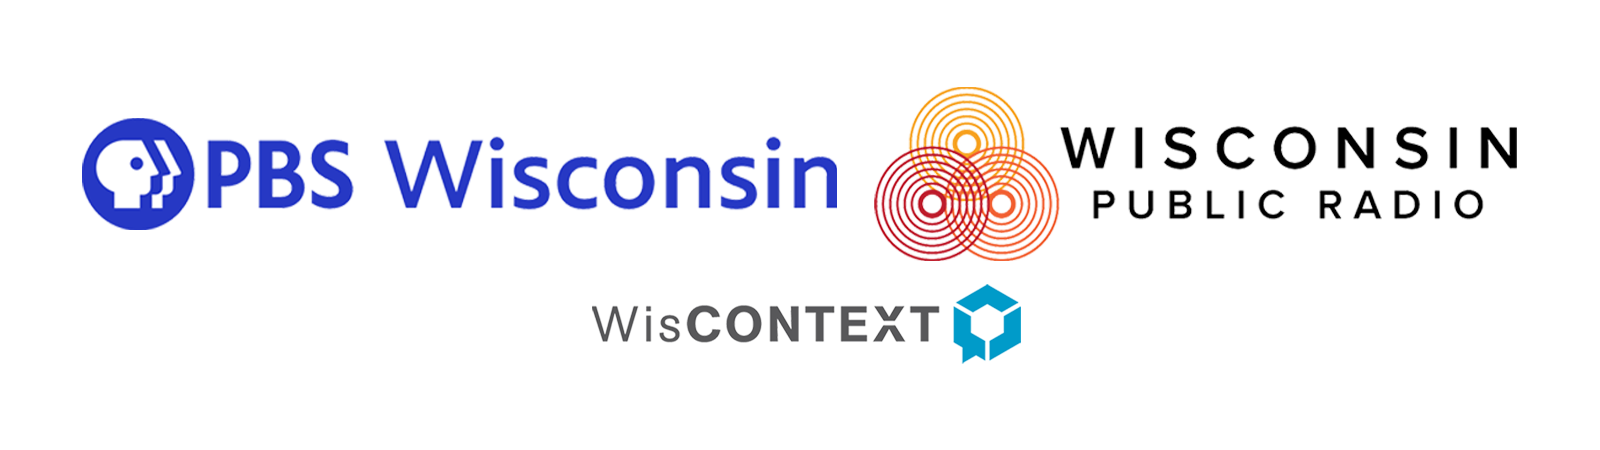 Logos of PBS Wisconsin, Wisconsin Public Radio and WisContext